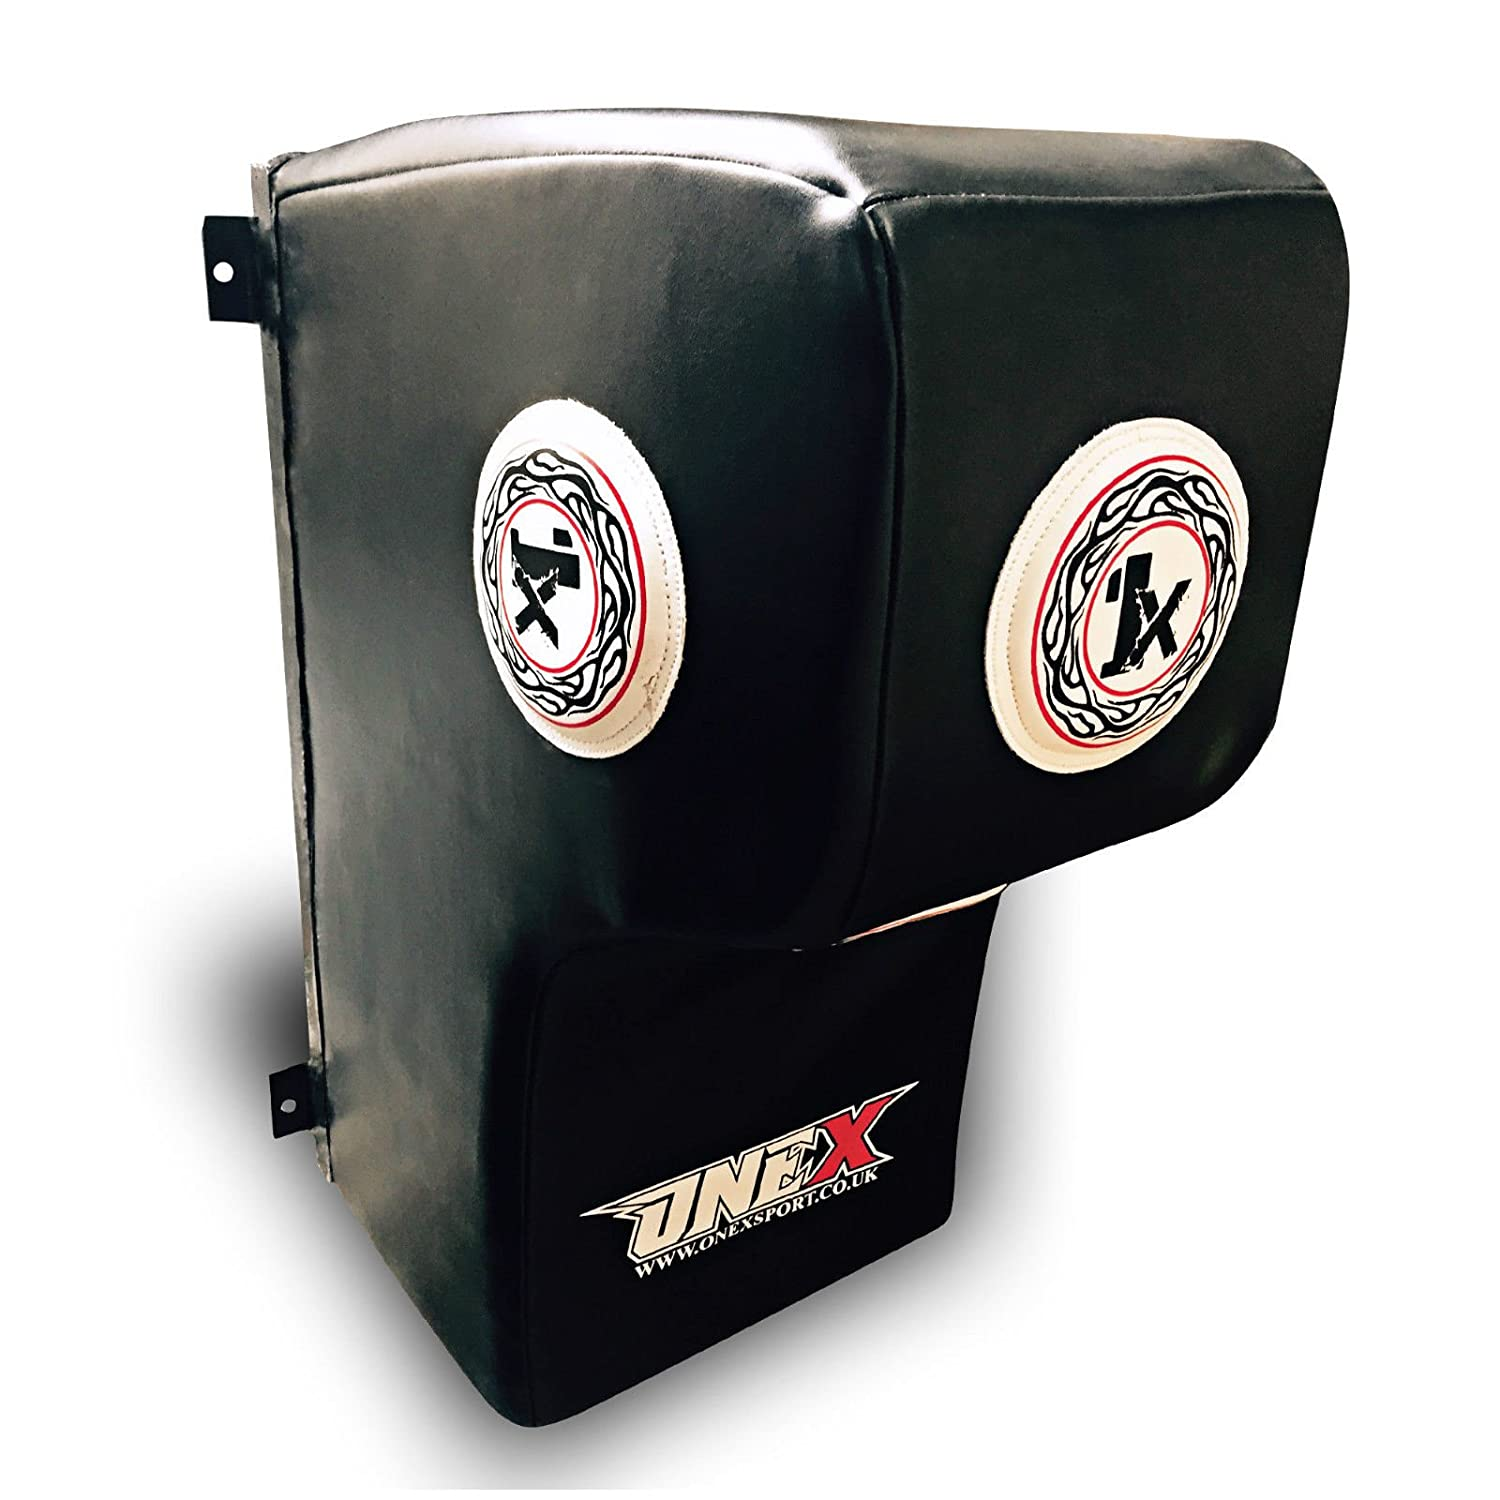 Super Pro Leather Wall Target Uper Cut Mount Strike Sheild Punch Bag Gym Boxing Pads Thai Mitts Kickboxing Free Rope